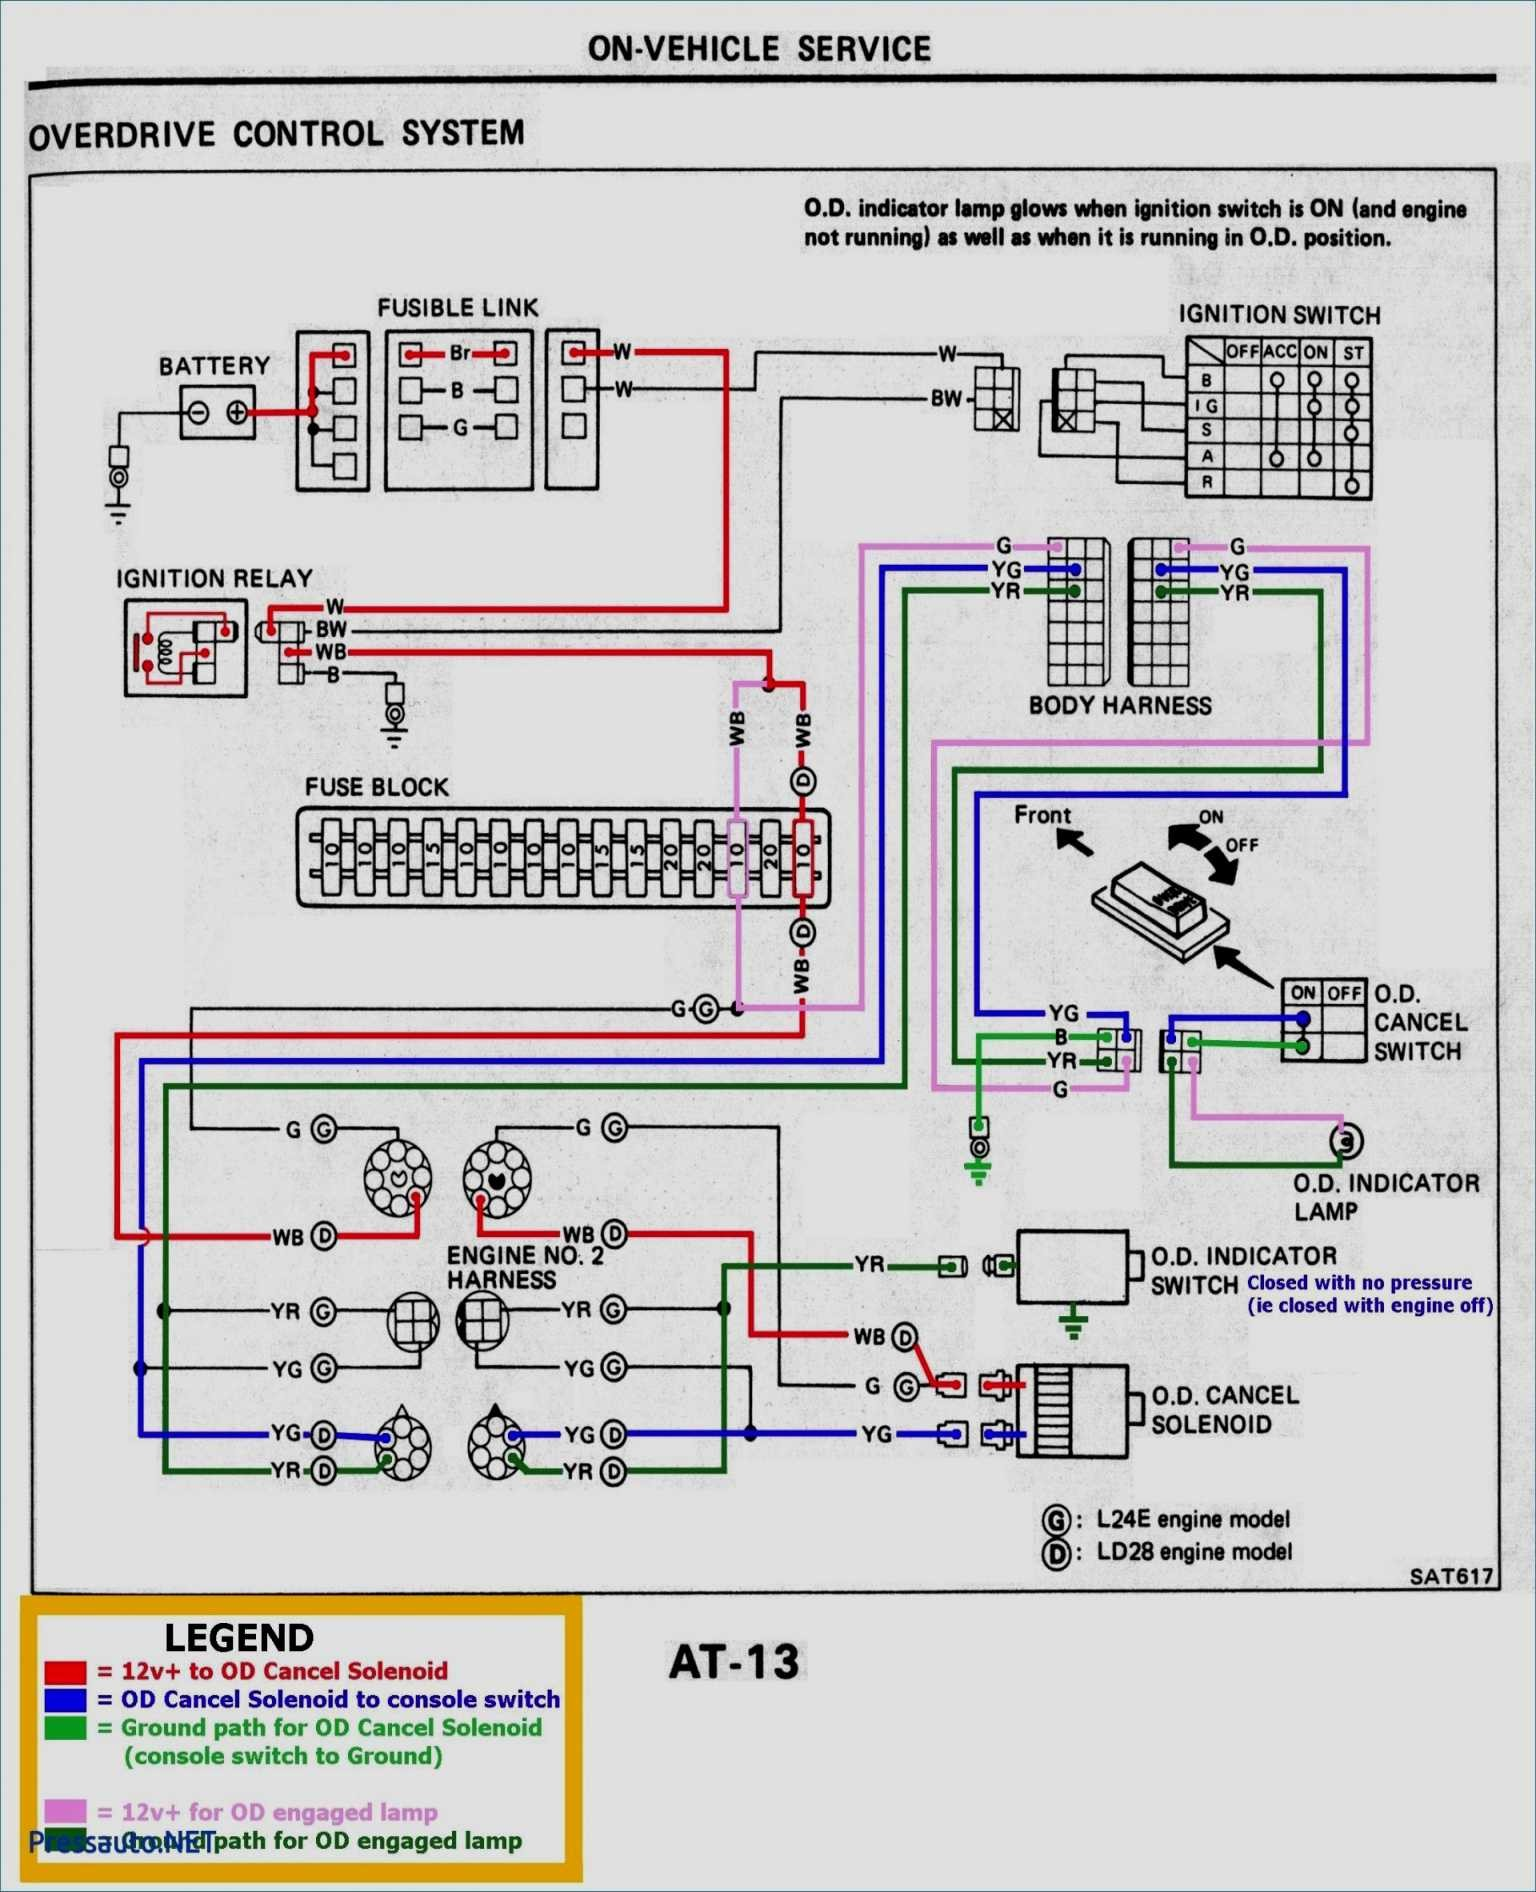 2001 Pontiac Montana Engine Diagram 2001 Pontiac Montana Wiring Diagram 2001 Caravan Wiring Diagram